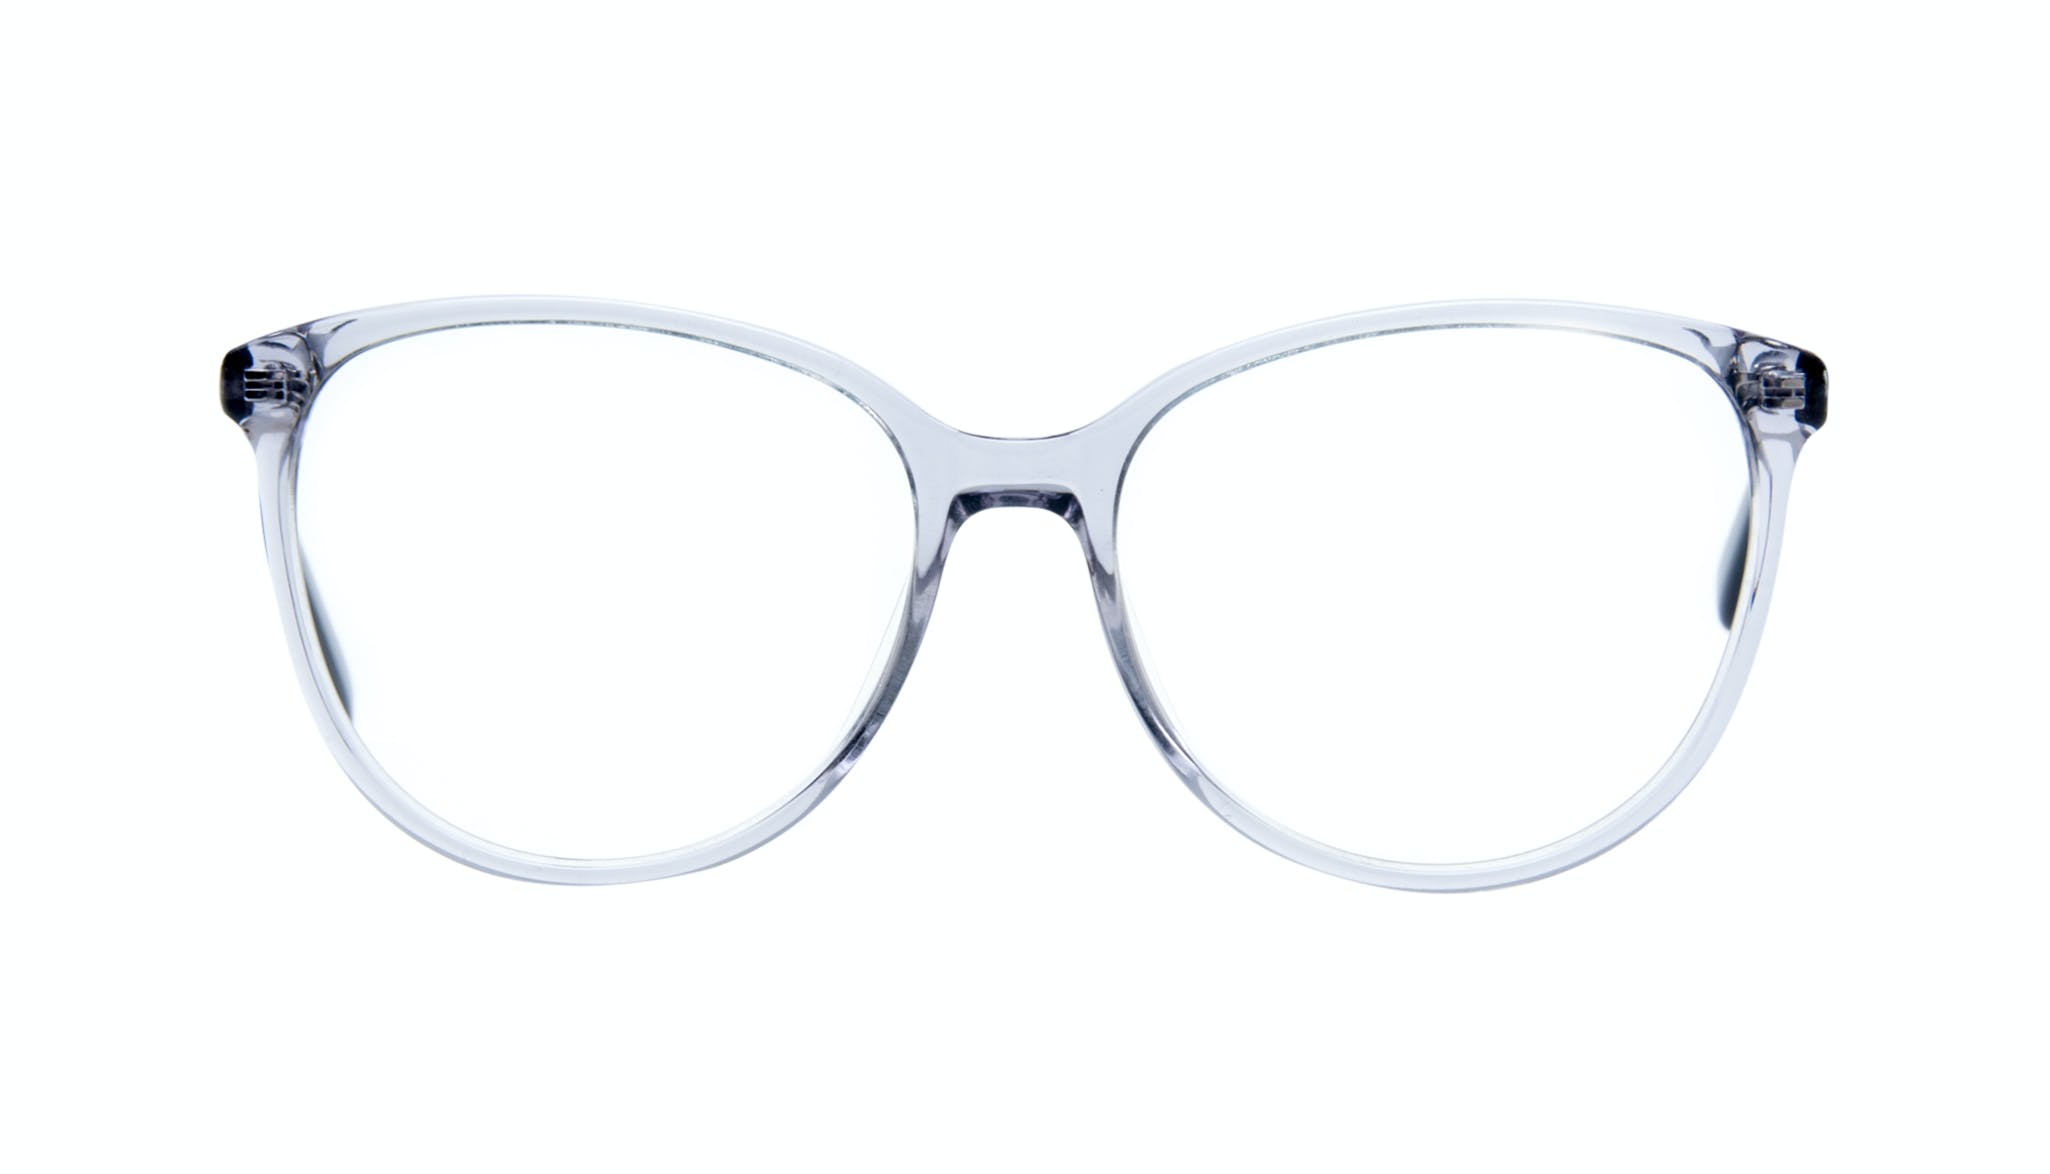 Affordable Fashion Glasses Round Eyeglasses Women Imagine Grey Metal Front